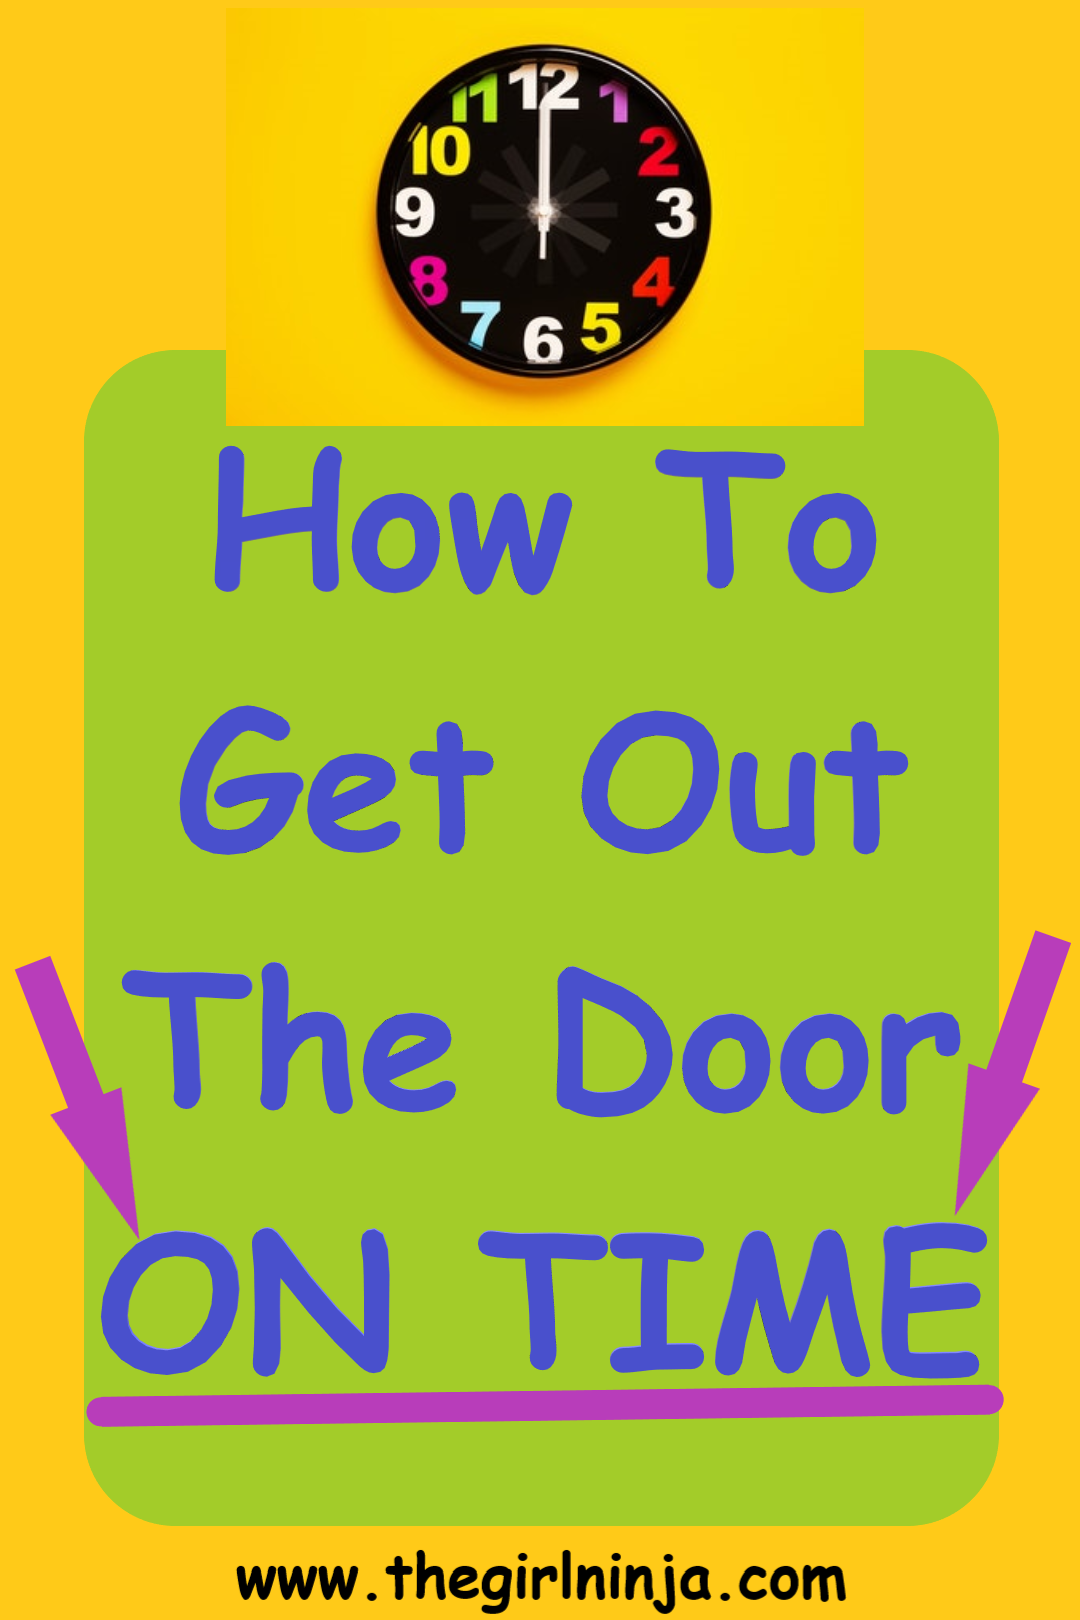 Clock with black face, multicolored numbers and white hands sit at the top center of a yellow rectangle. Below clock a green rectangle has blue text that reads How To Get Out The Door ON TIME. At bottom center black text reads www.thegirlninja.com